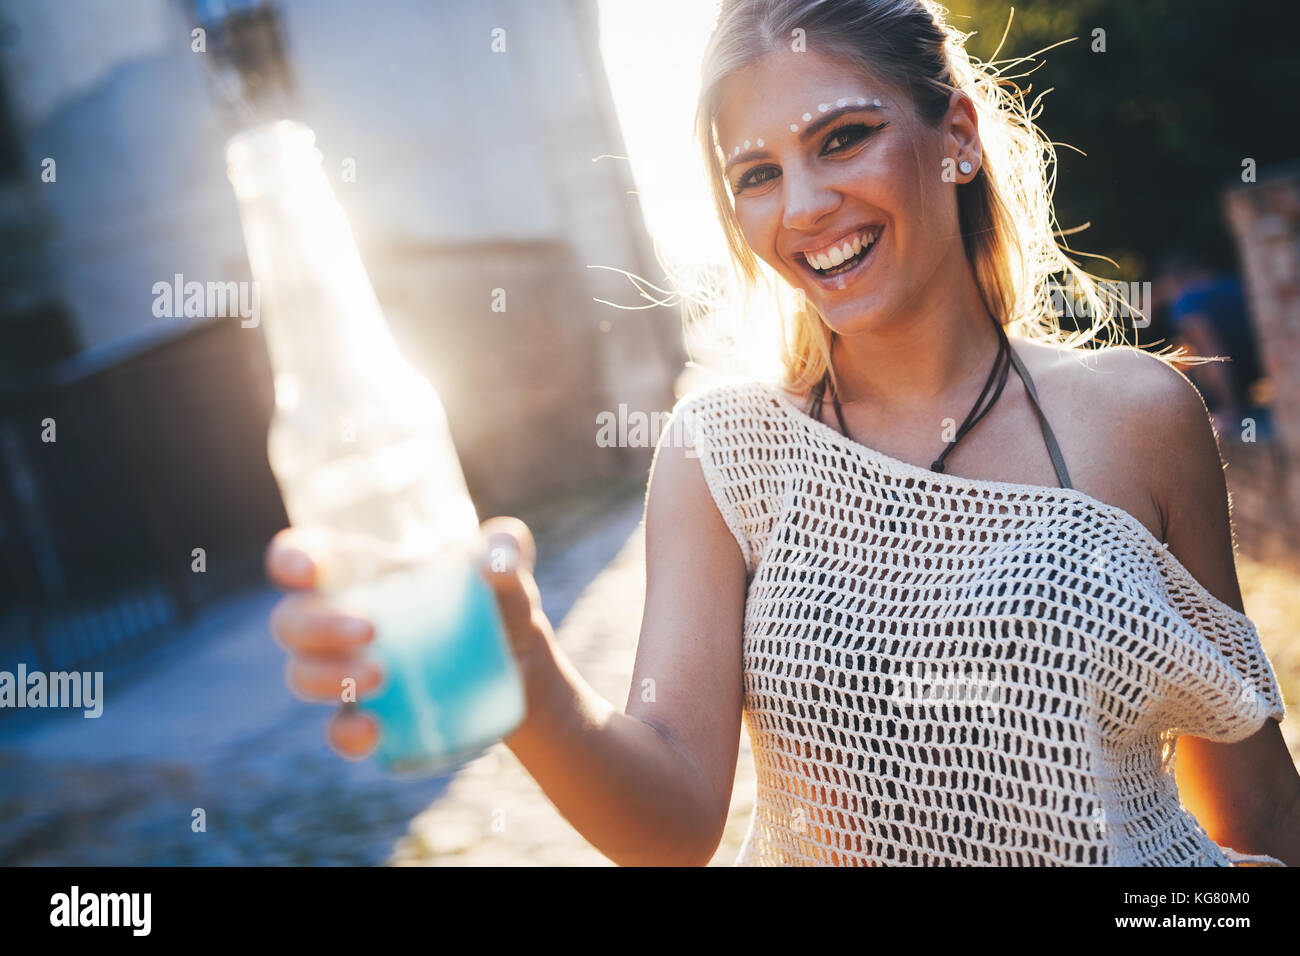 Portrait of happy young girl holding drink - Stock Image